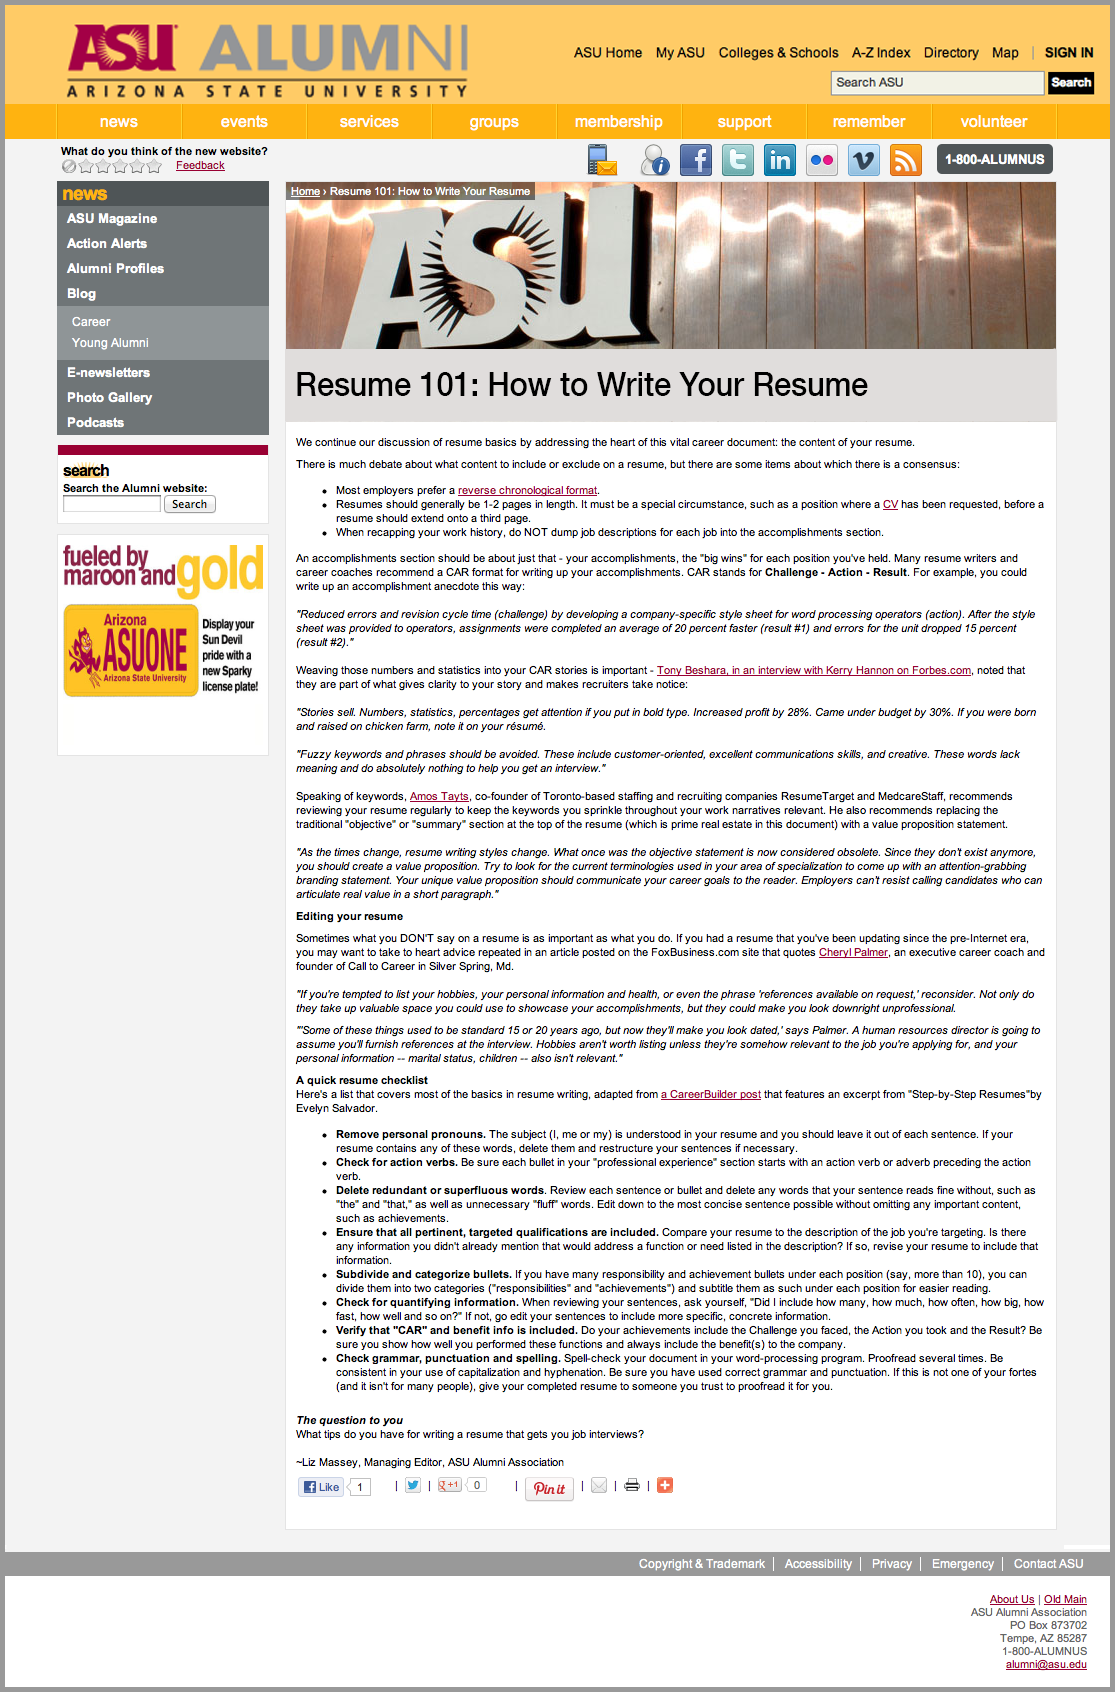 arizona state univ.- resume 101- how to write your resume.png